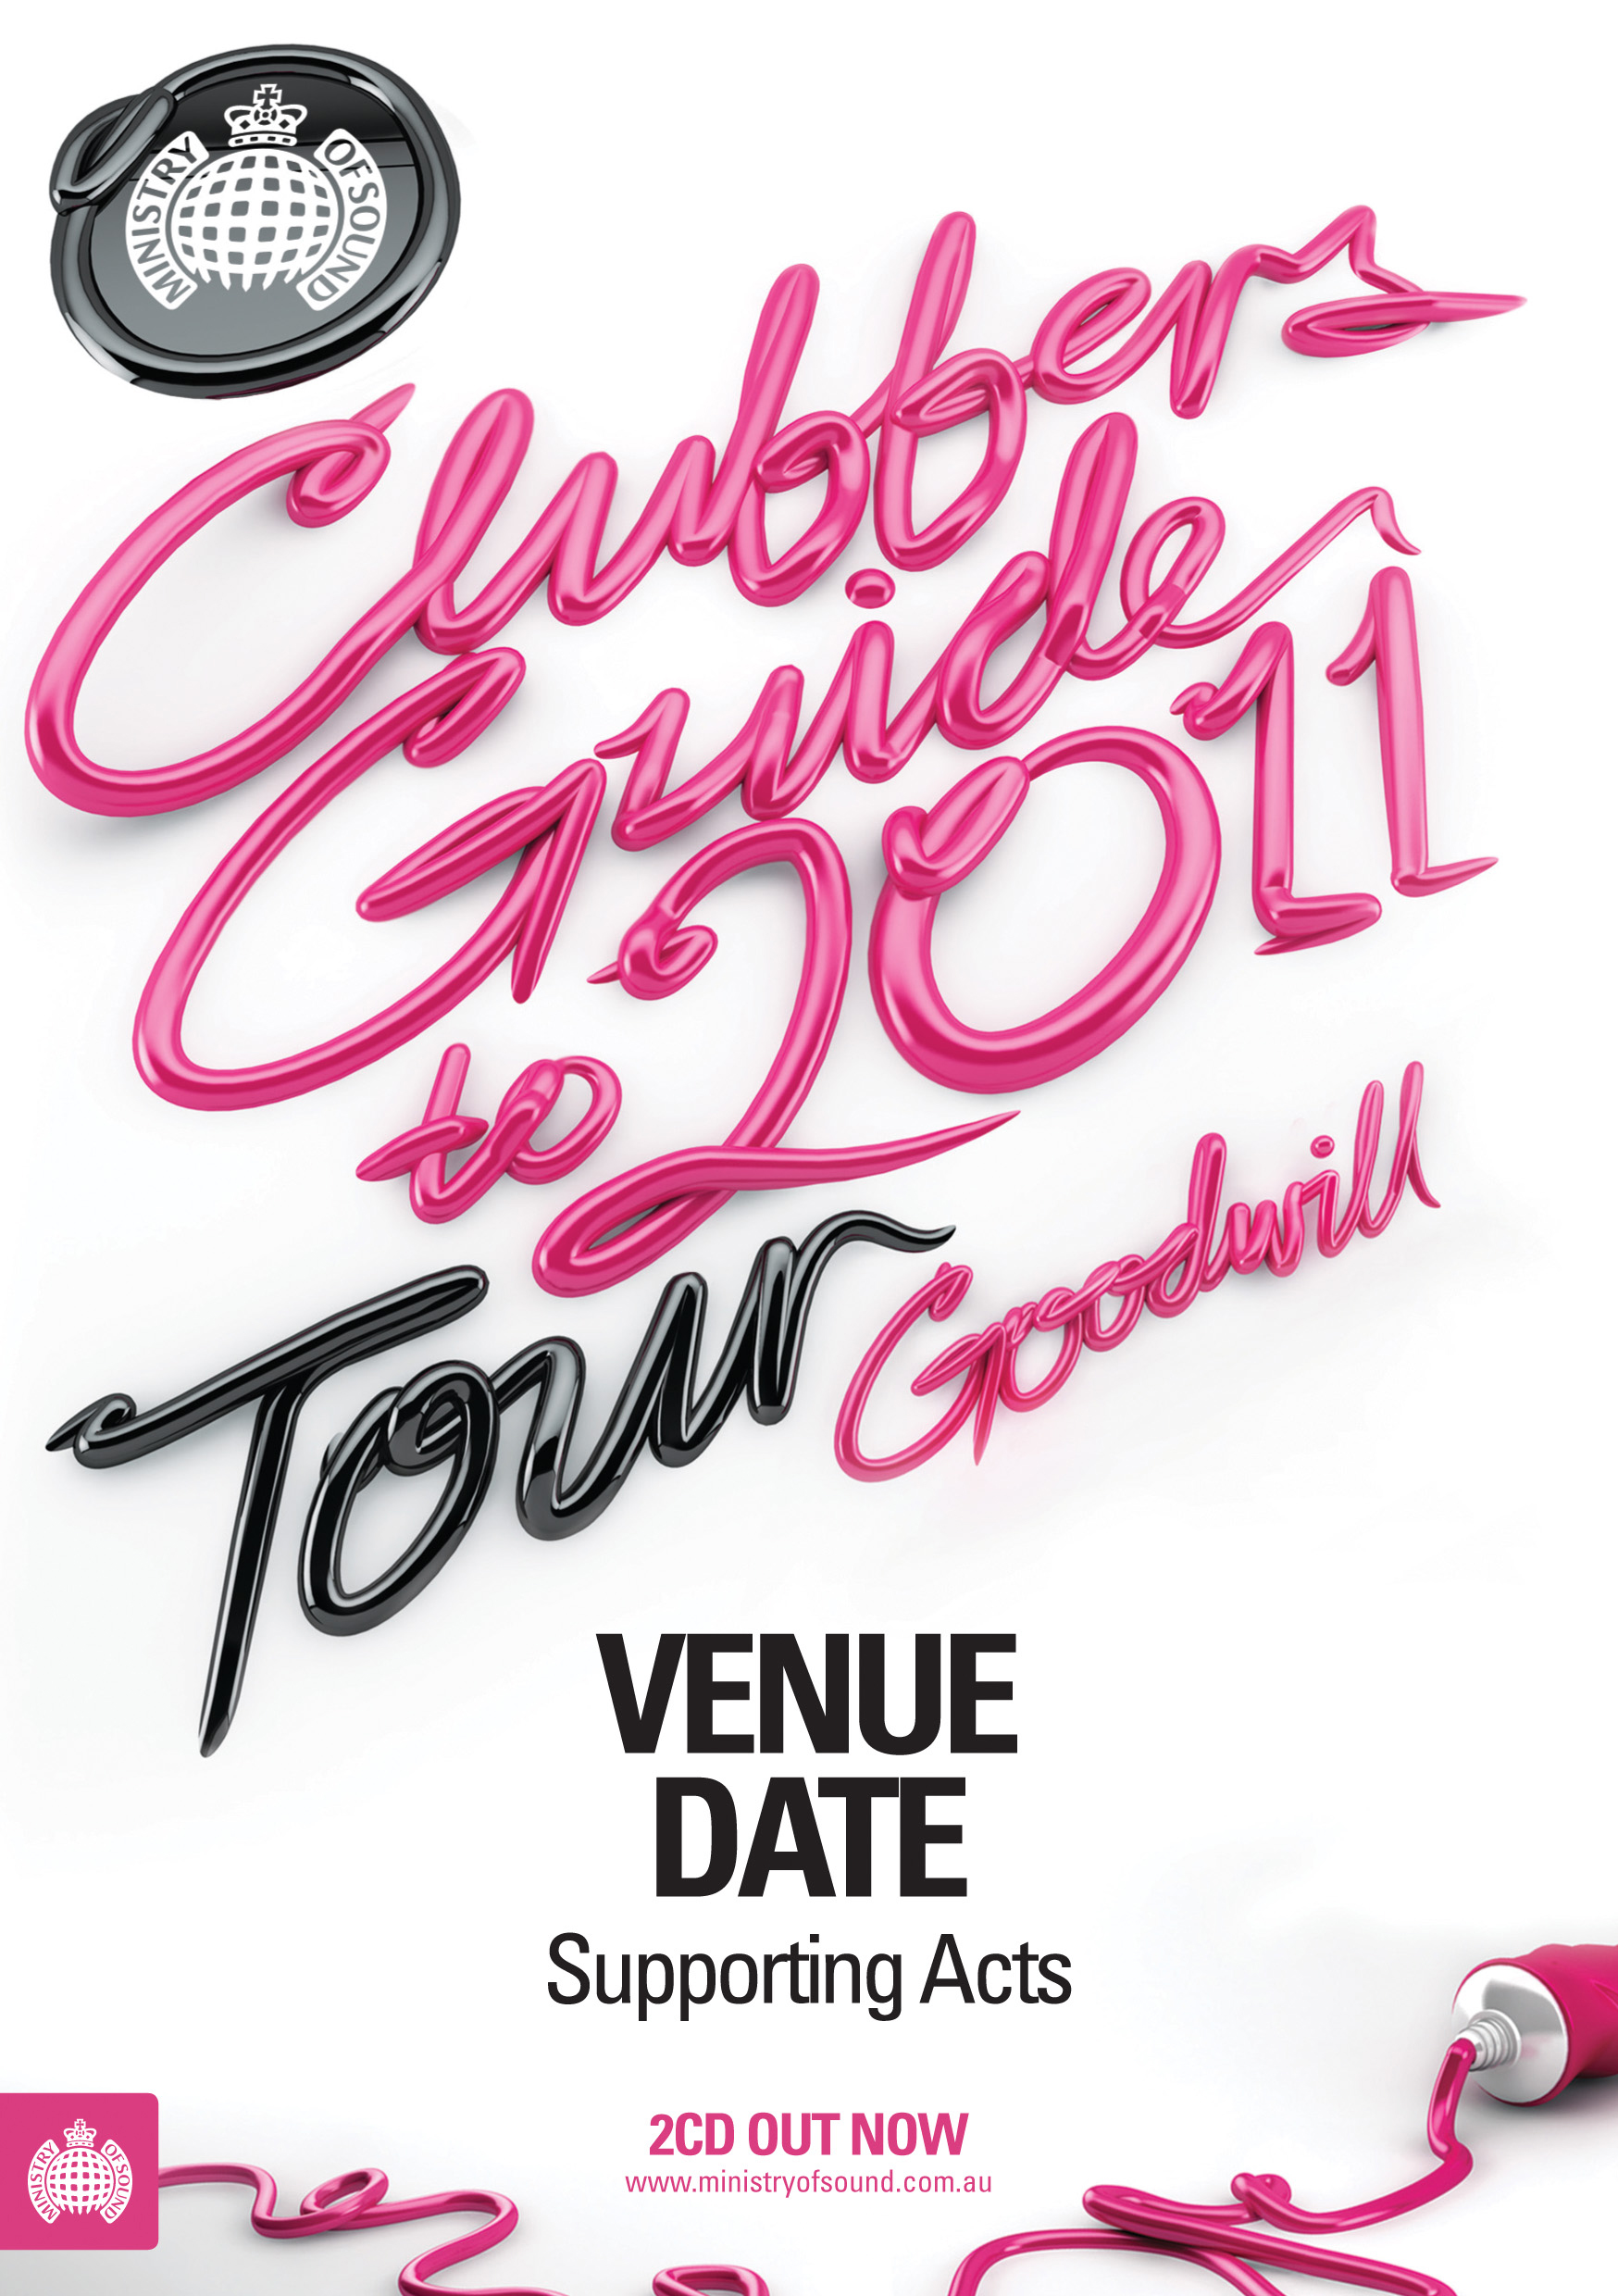 clubbers guide to 2011, 3d letters in pink like toothpaste, by luke choice